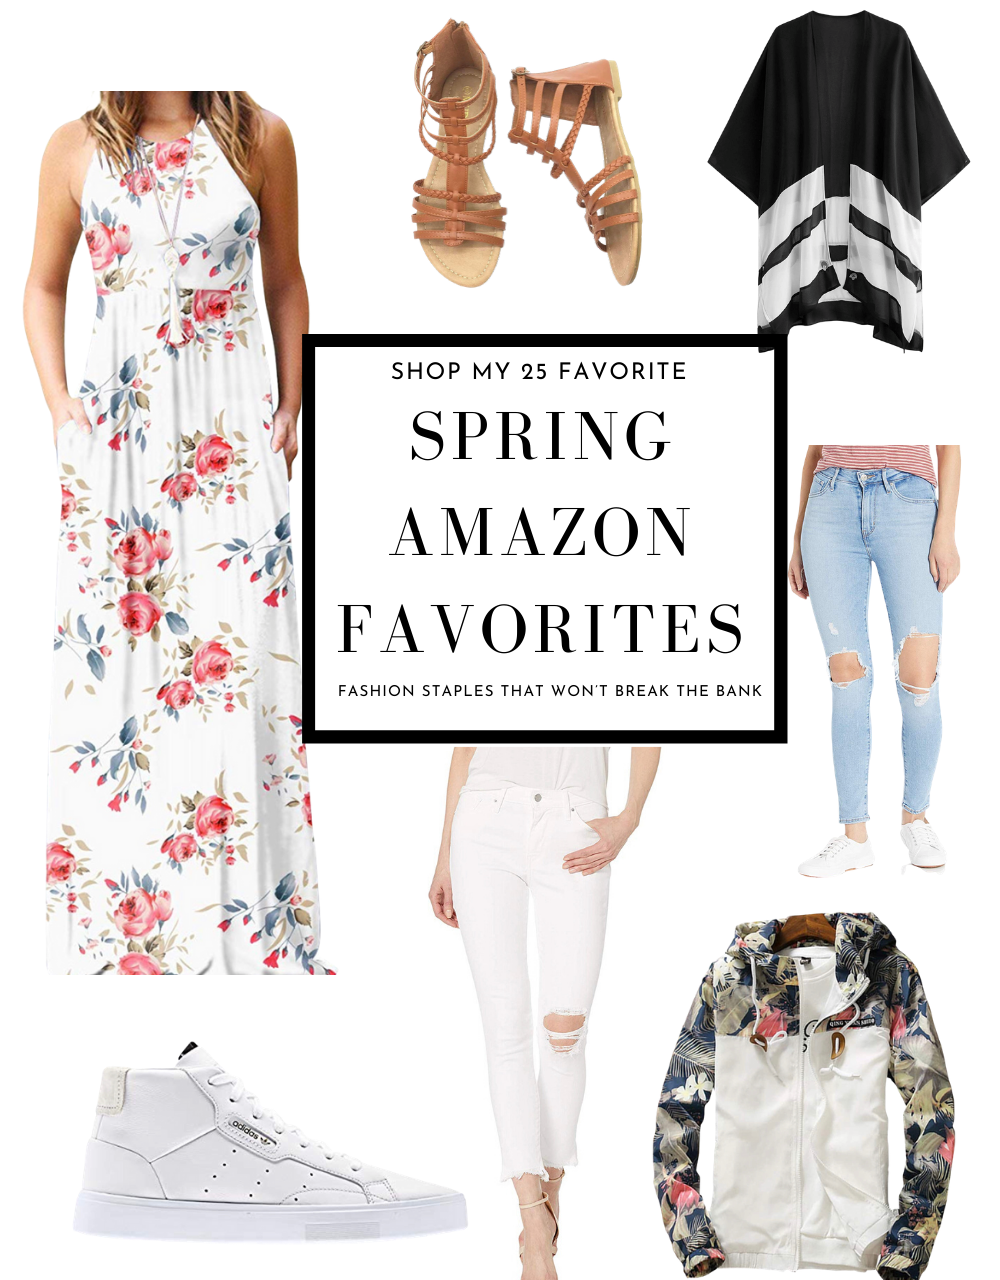 Shop My 25 Spring Wardrobe Favorites from Amazon